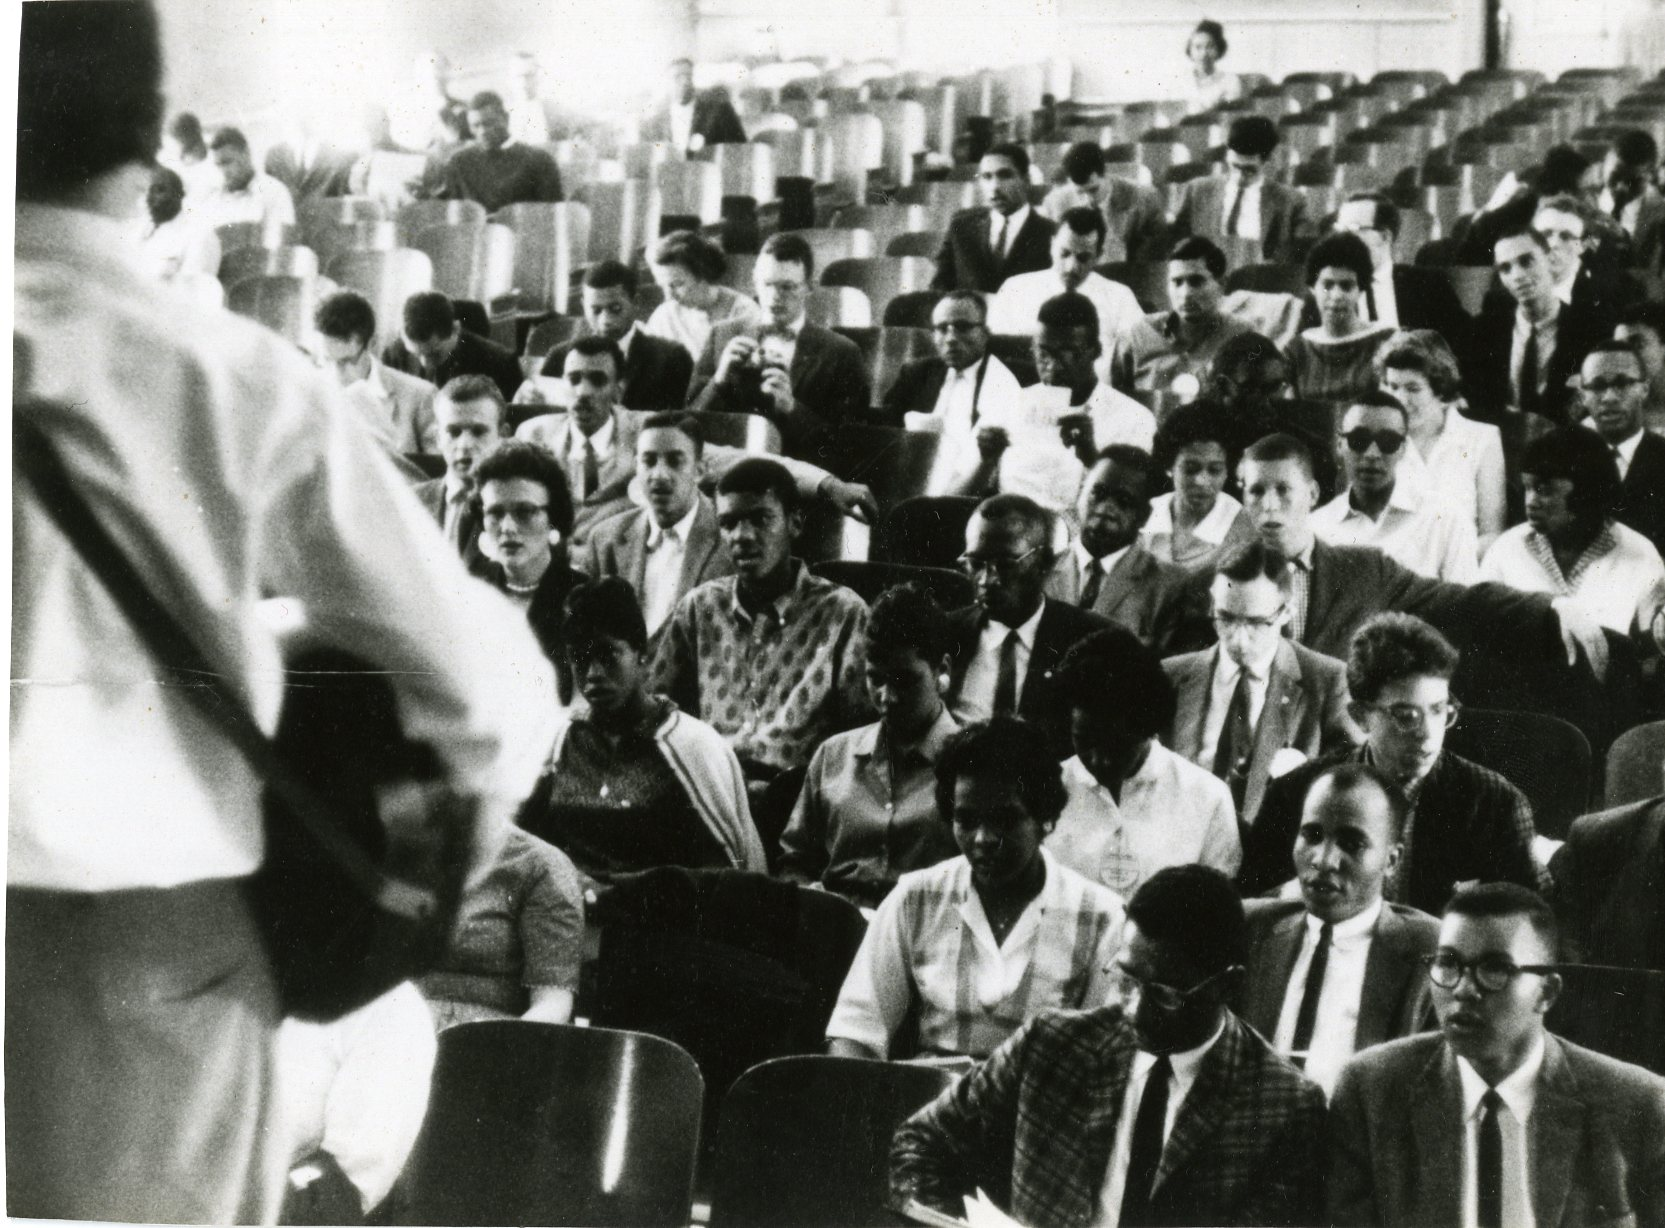 The back of Guy Carawan singing to audience in auditorium at Shaw University, Durham, NC, 1960. Founding meetings of SNCC.